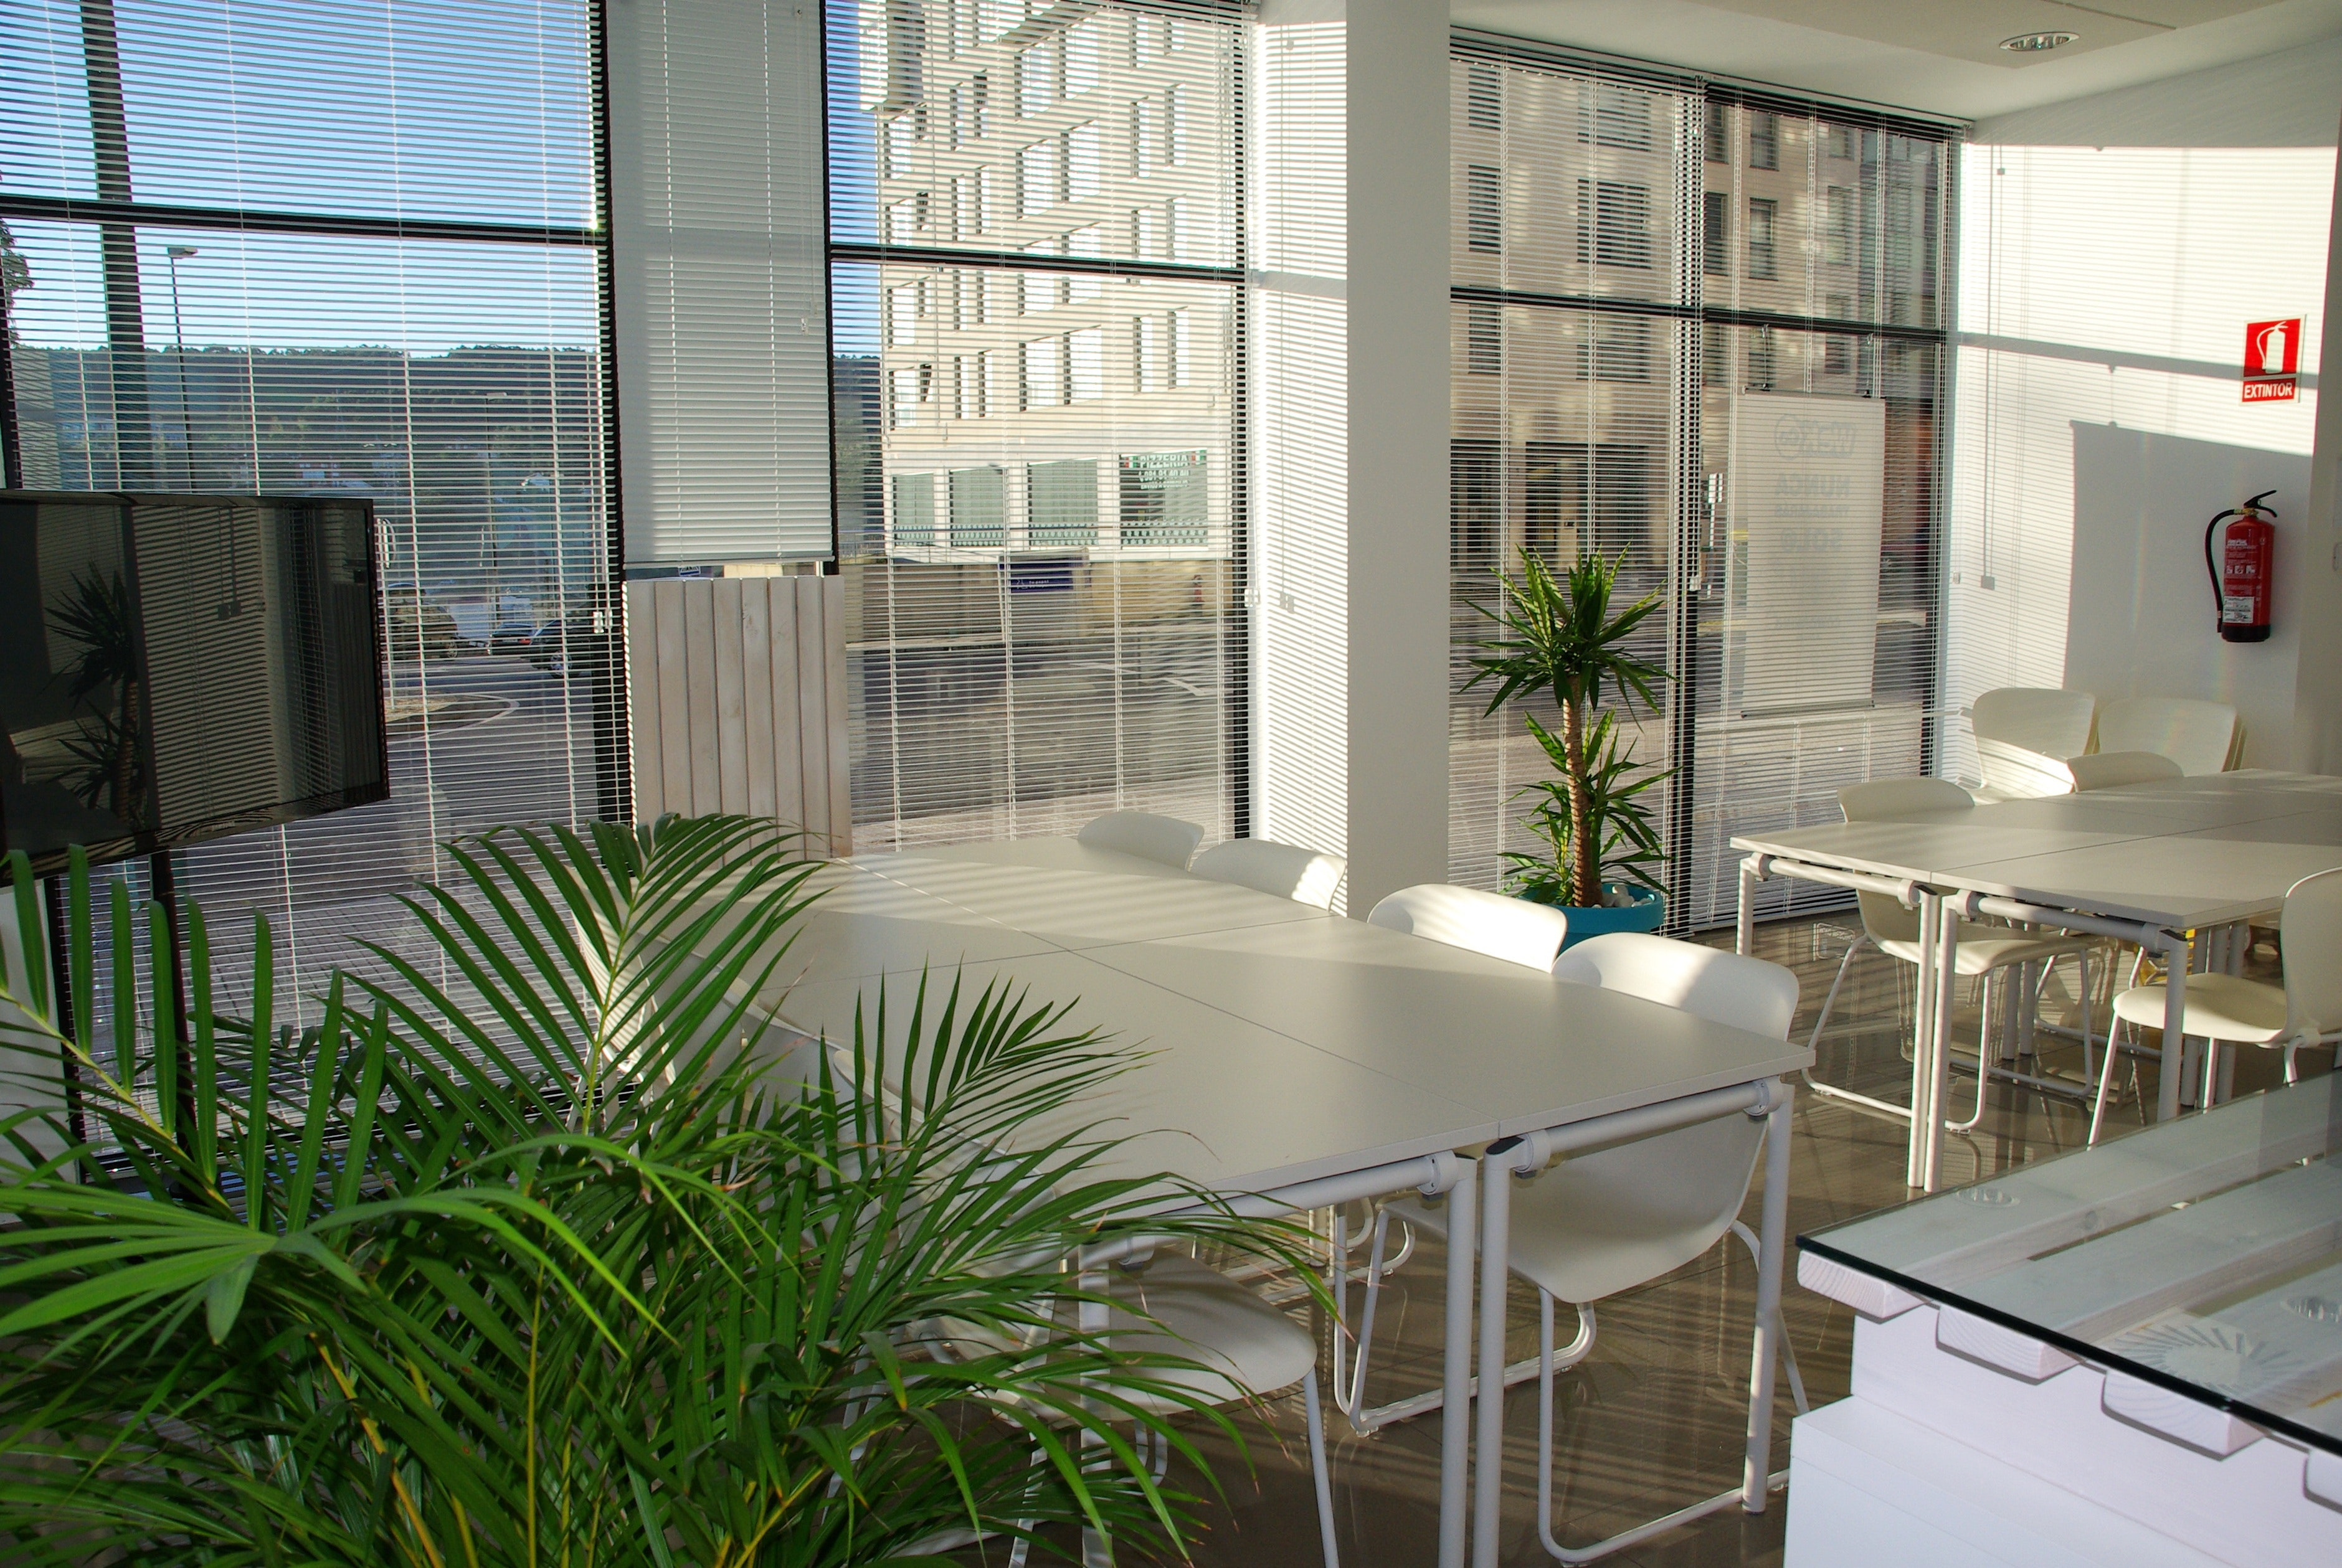 Meeting room with biophilic office design